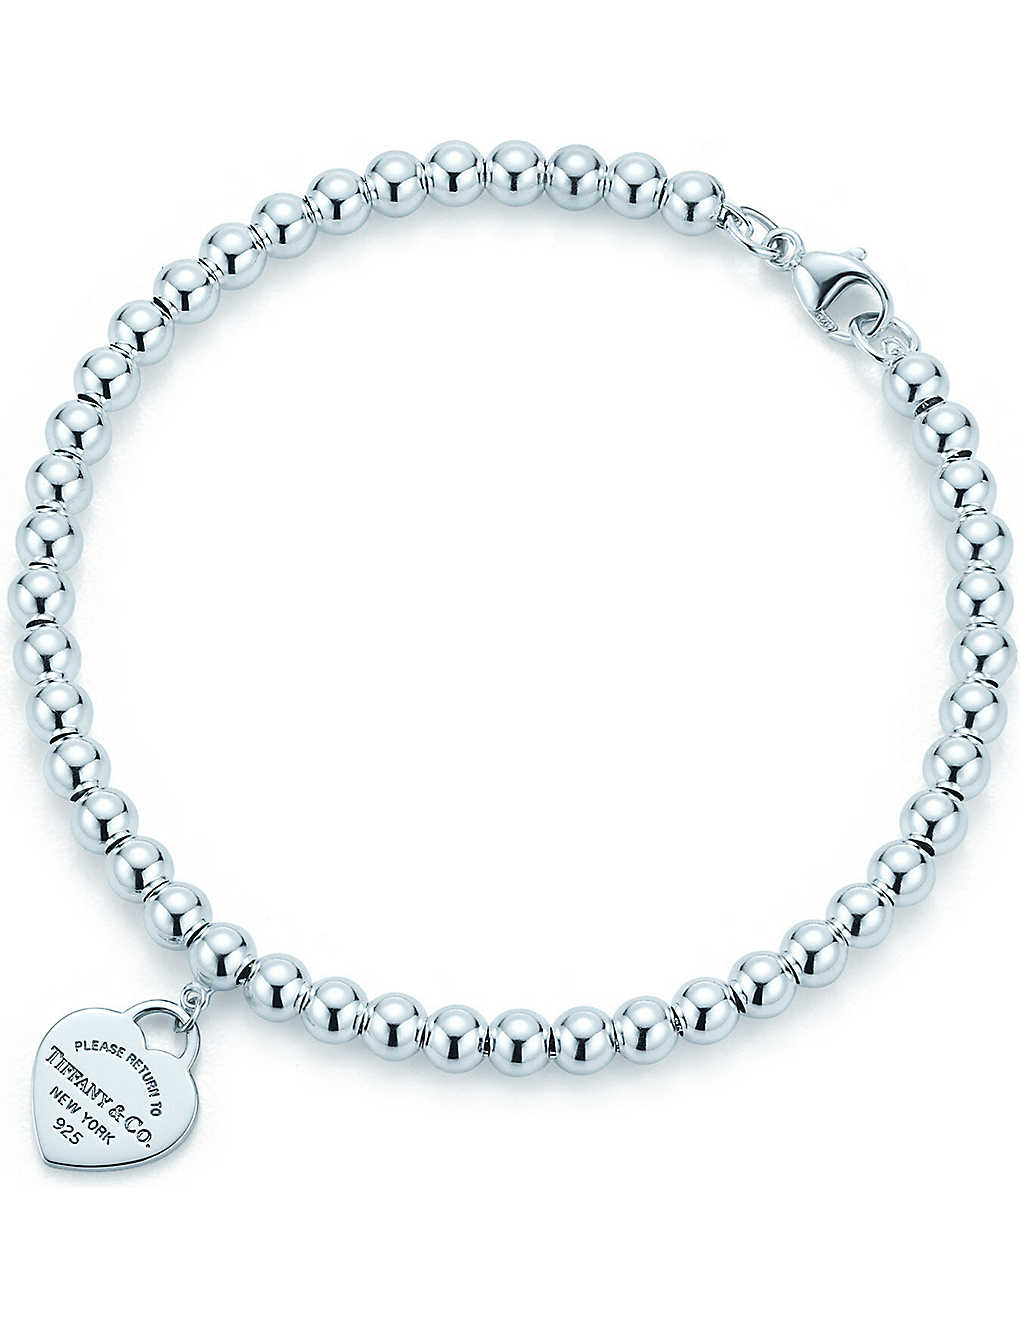 bbfce9707 TIFFANY & CO Return to Tiffany mini heart tag in sterling silver on a bead  bracelet